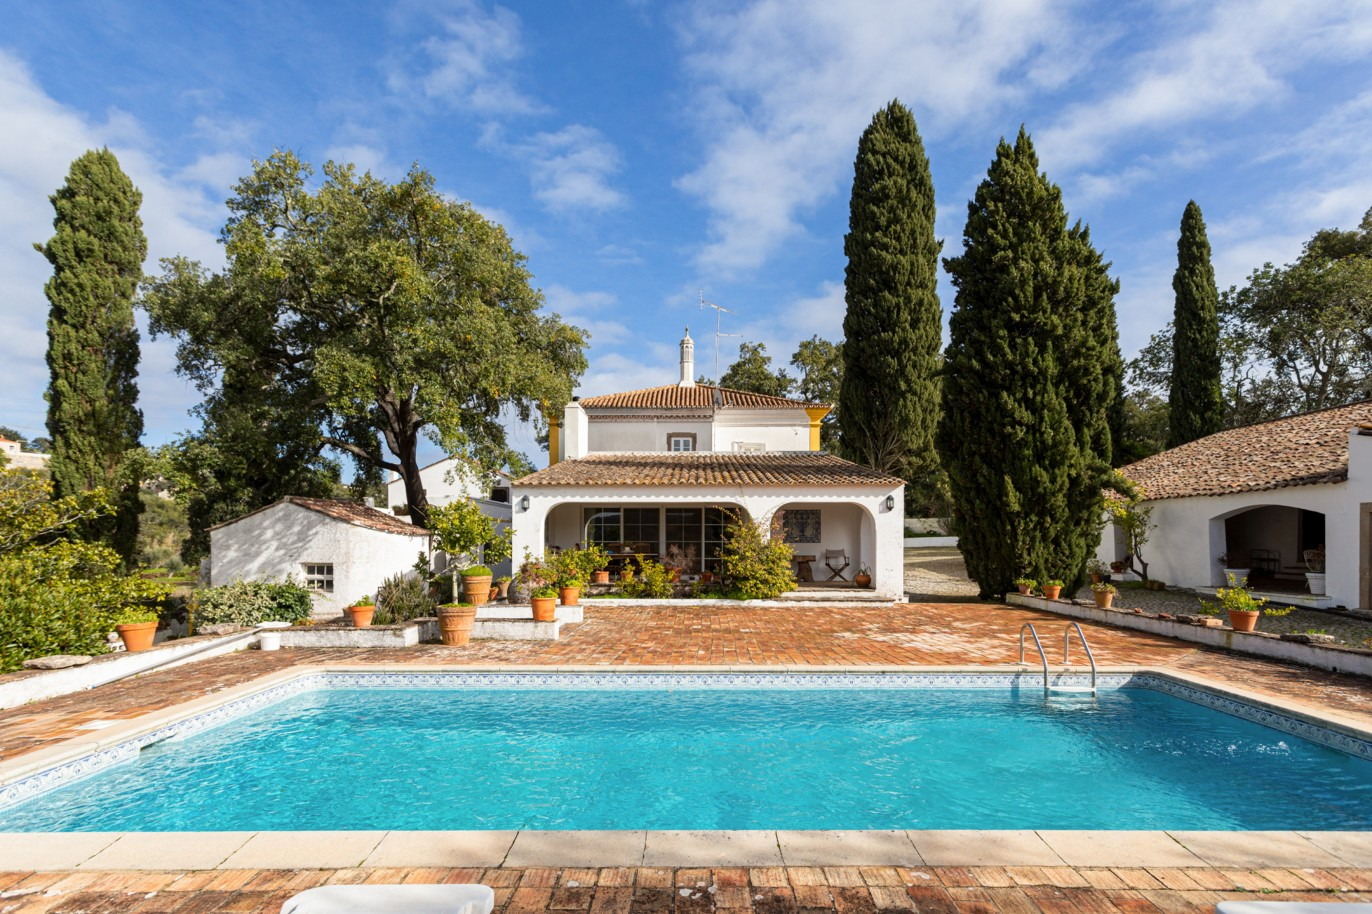 traditional-farm-with-swimming-pool-and-mountain-view-sao-bras-de-alportel-algarve